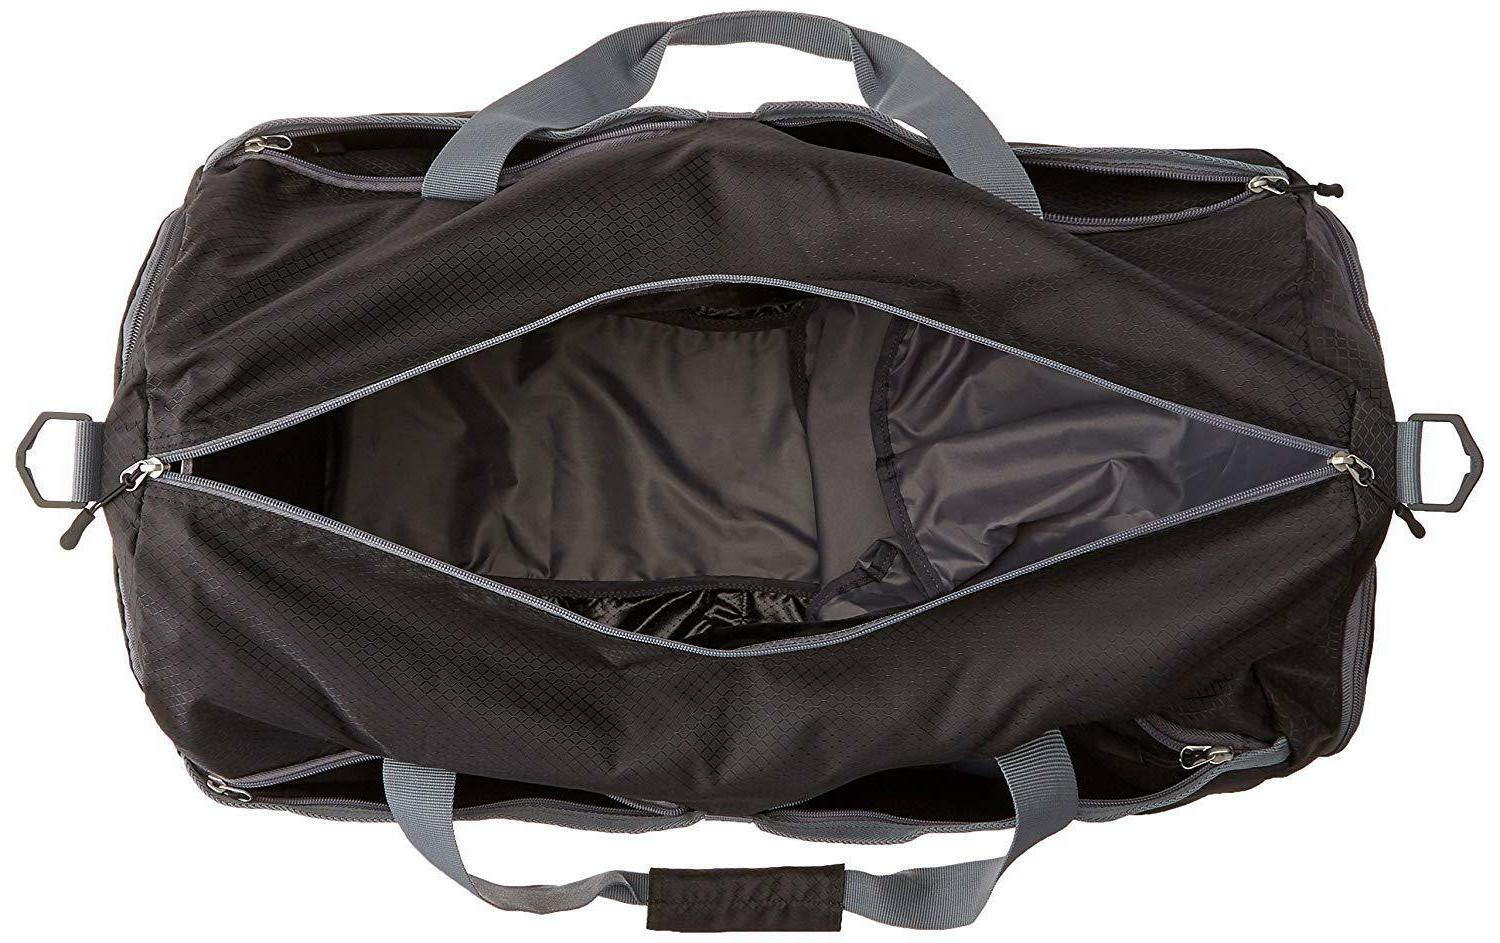 AmazonBasics Packable